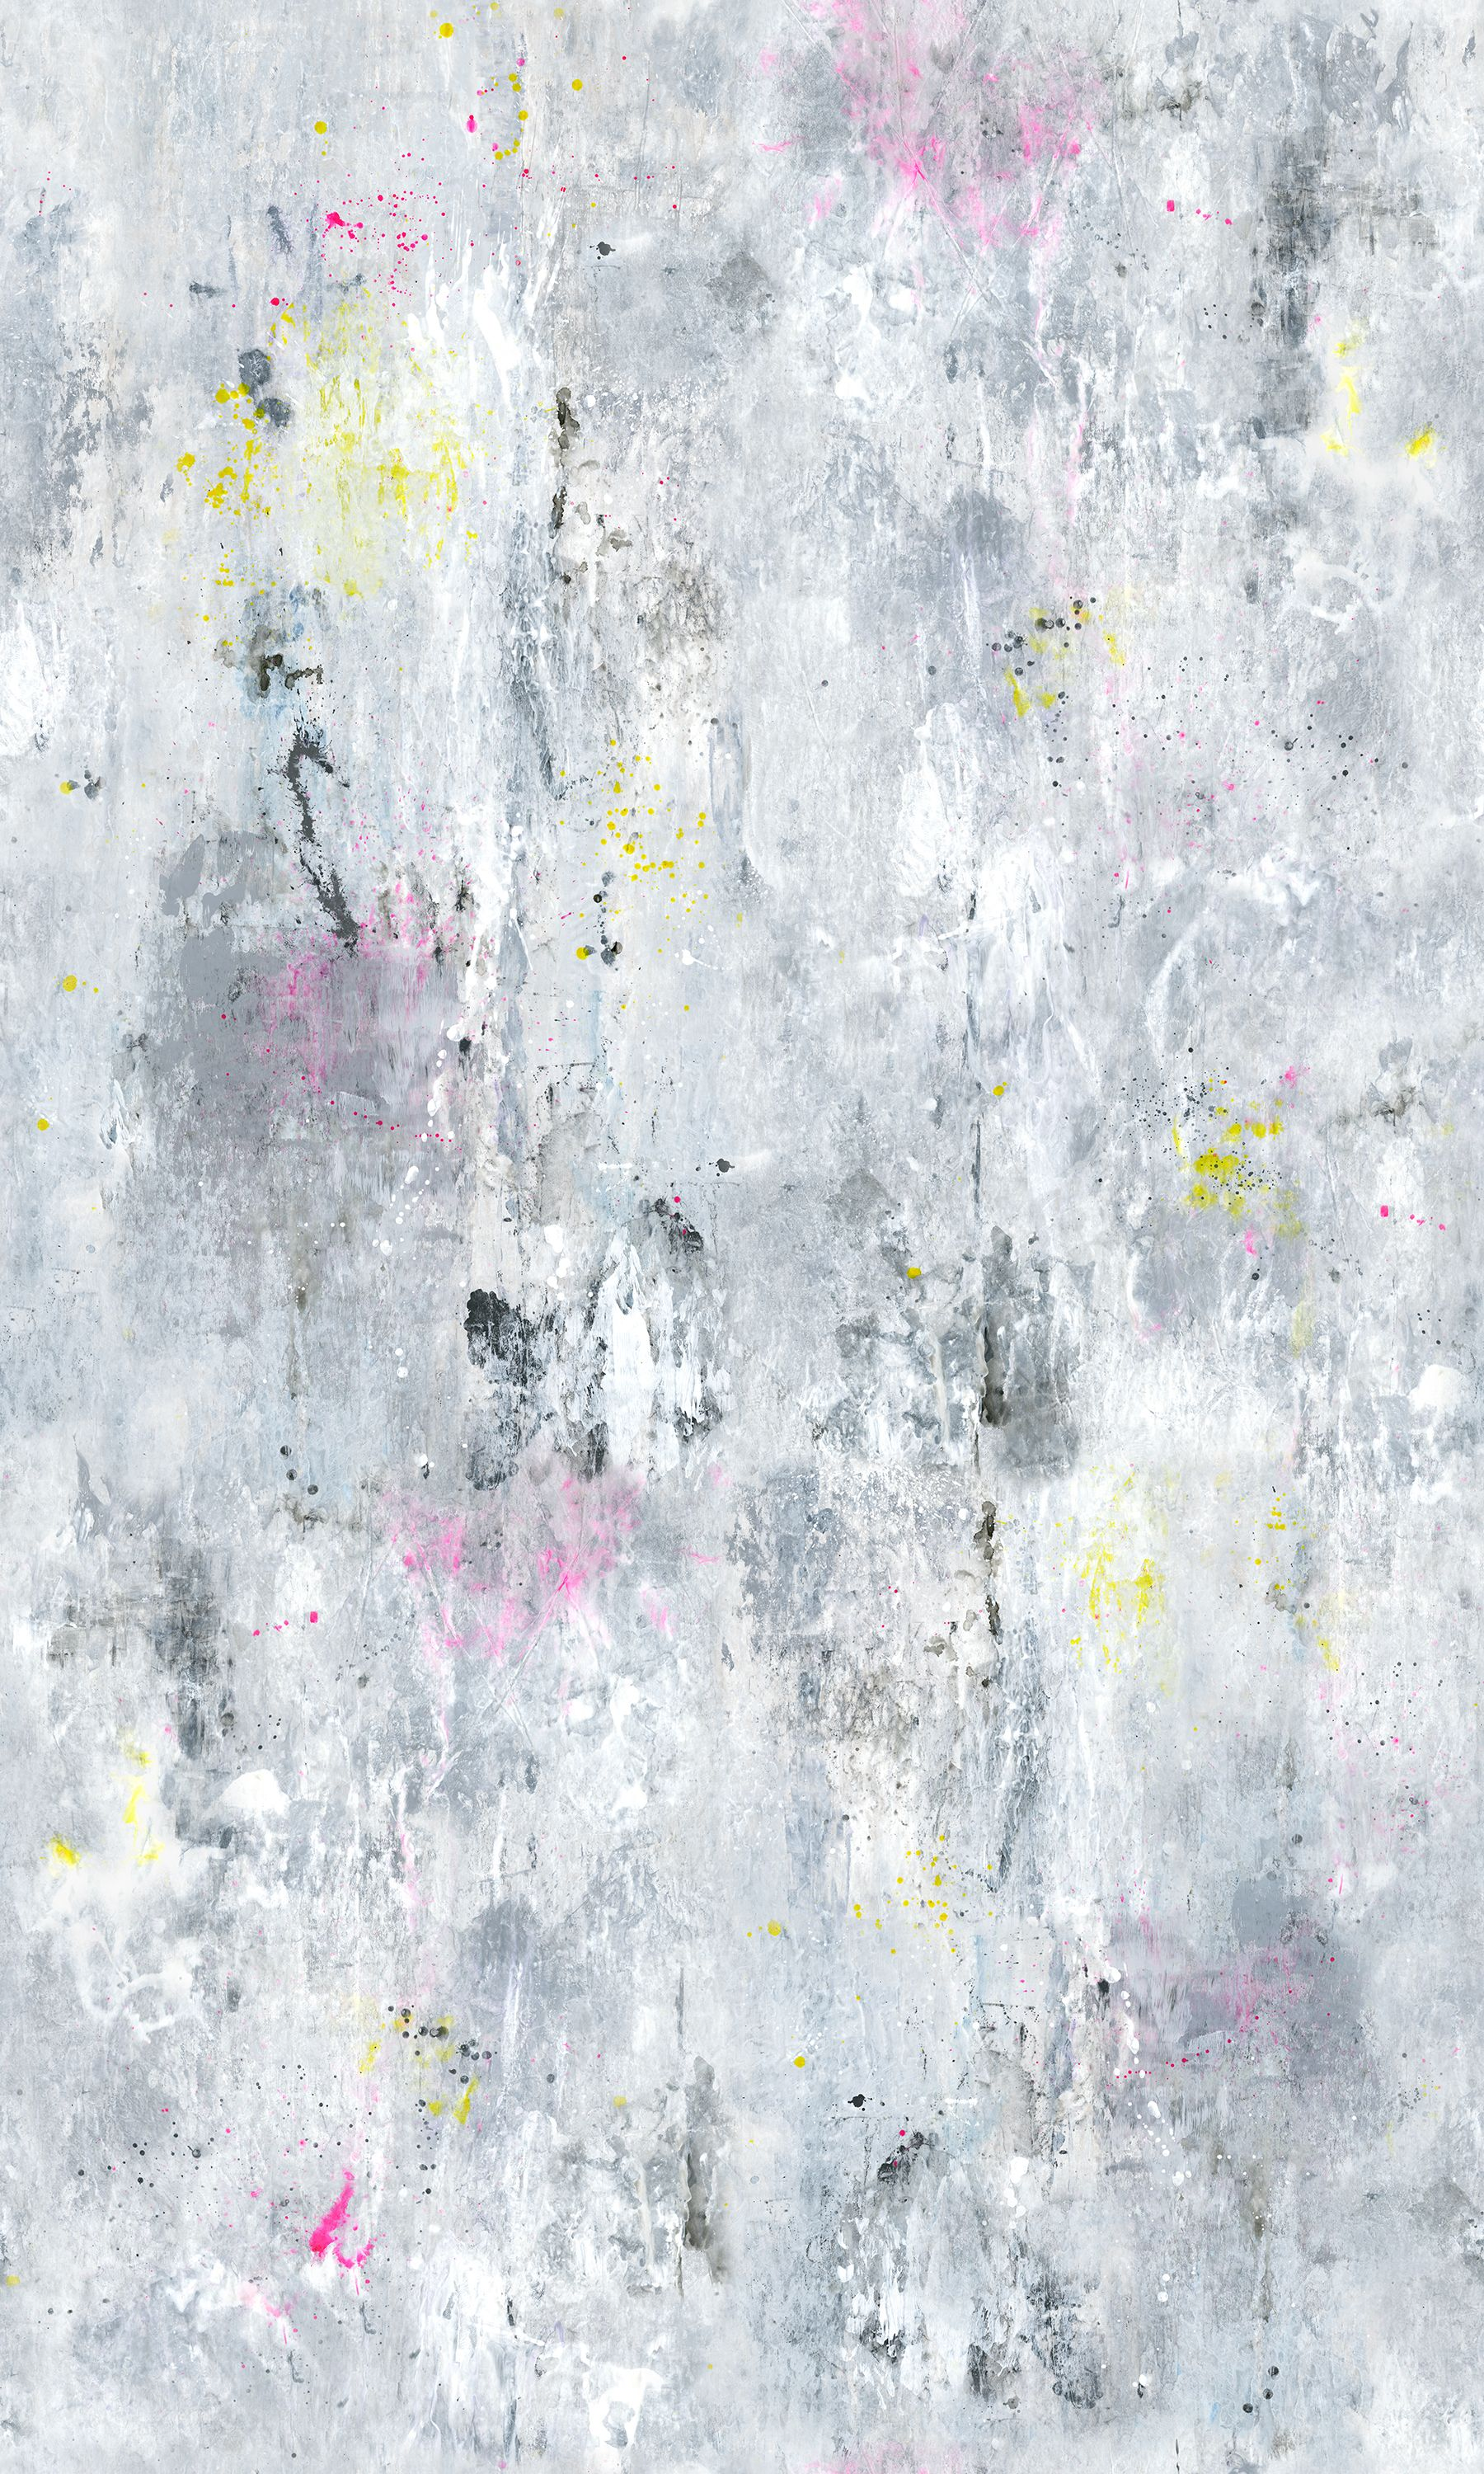 Beautiful Wallpaper Grey Watercolor - 2bef082e62b22d8c708e7c3a6cc15062  Photograph_7862100.jpg